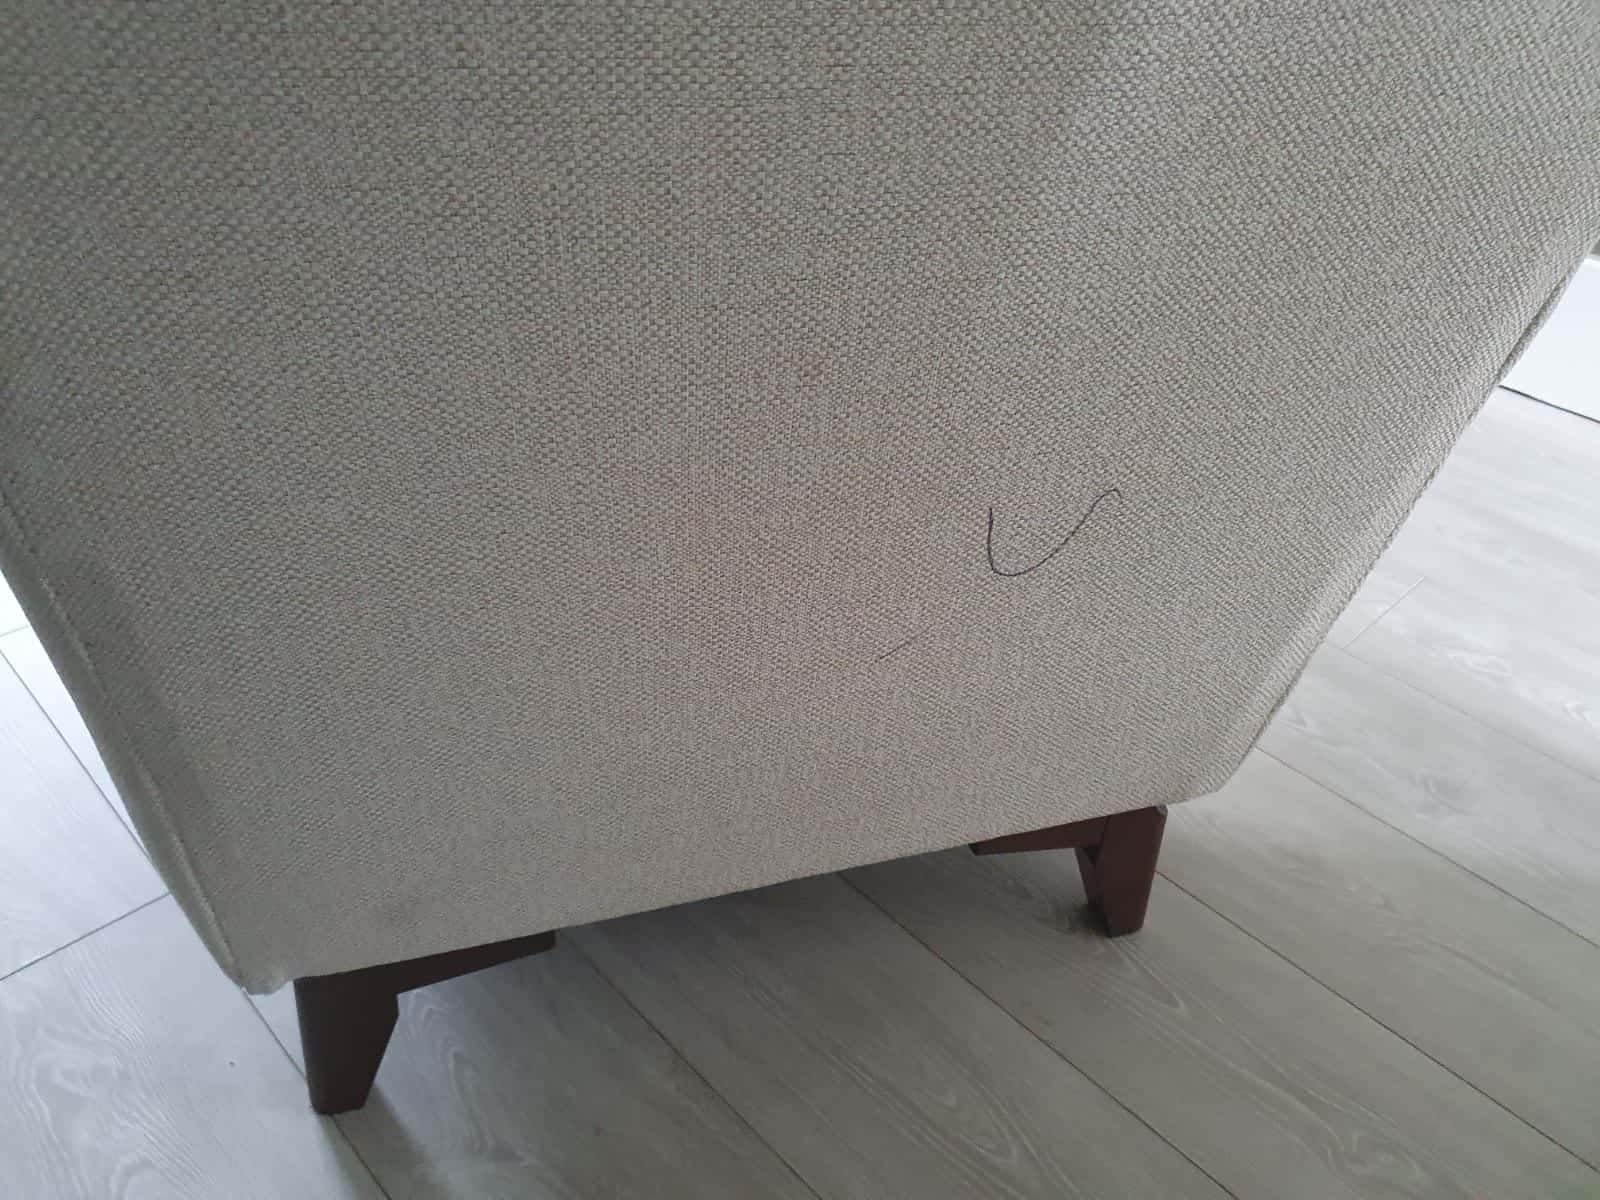 A before image of a sofa that is undergoing upholstery cleaning